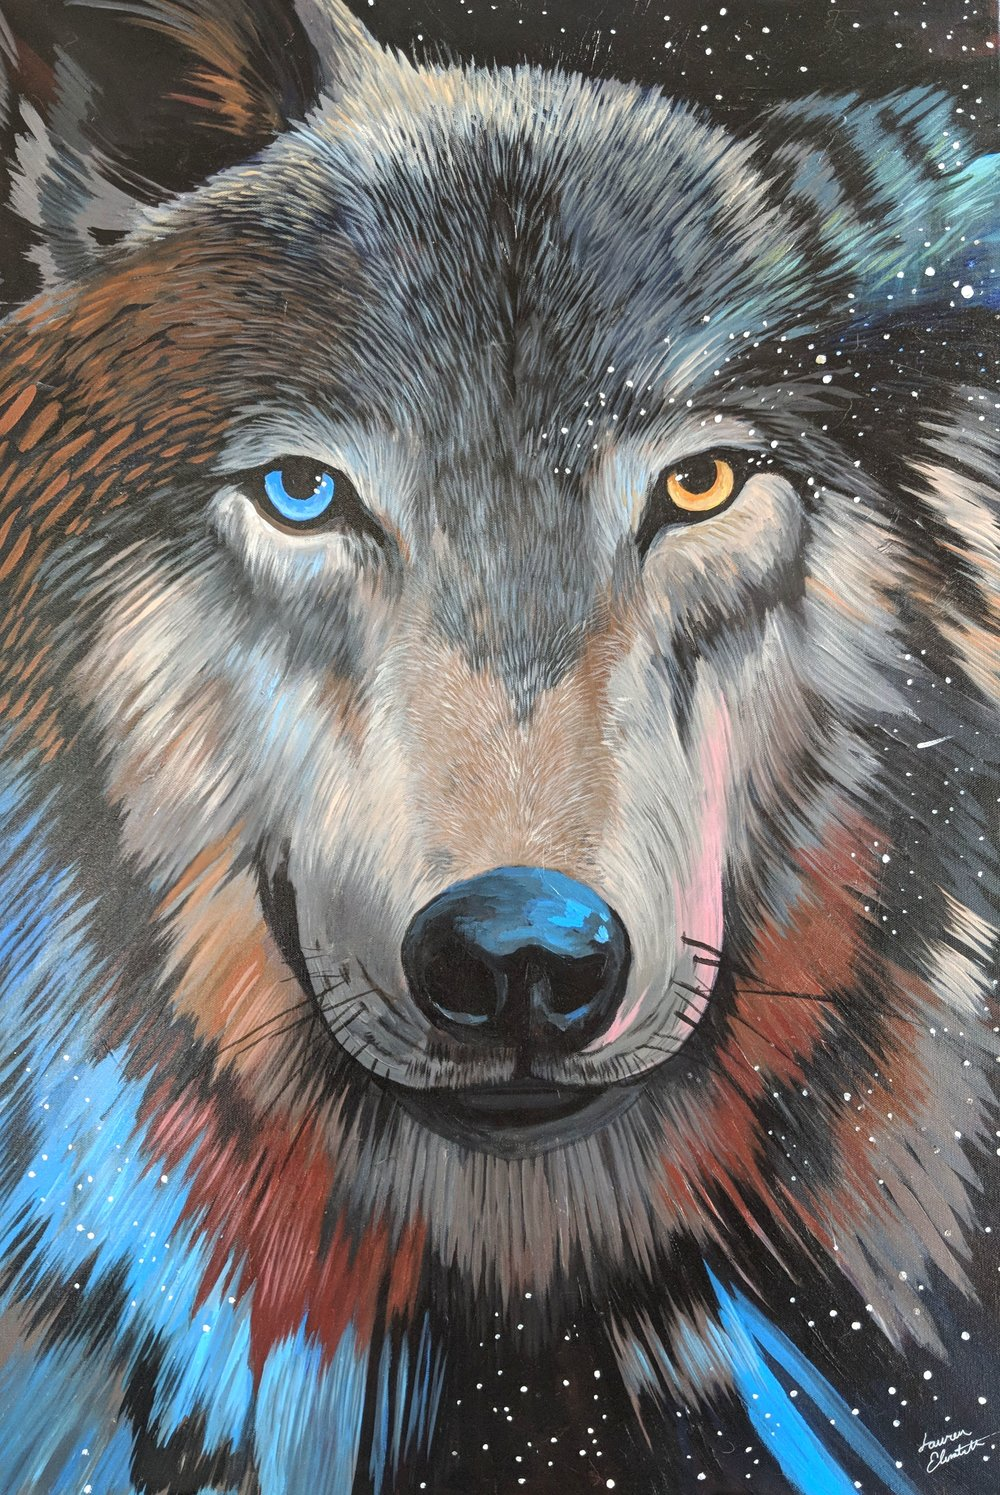 Forum on this topic: With Depression, the Wolf You Feed Is , with-depression-the-wolf-you-feed-is/